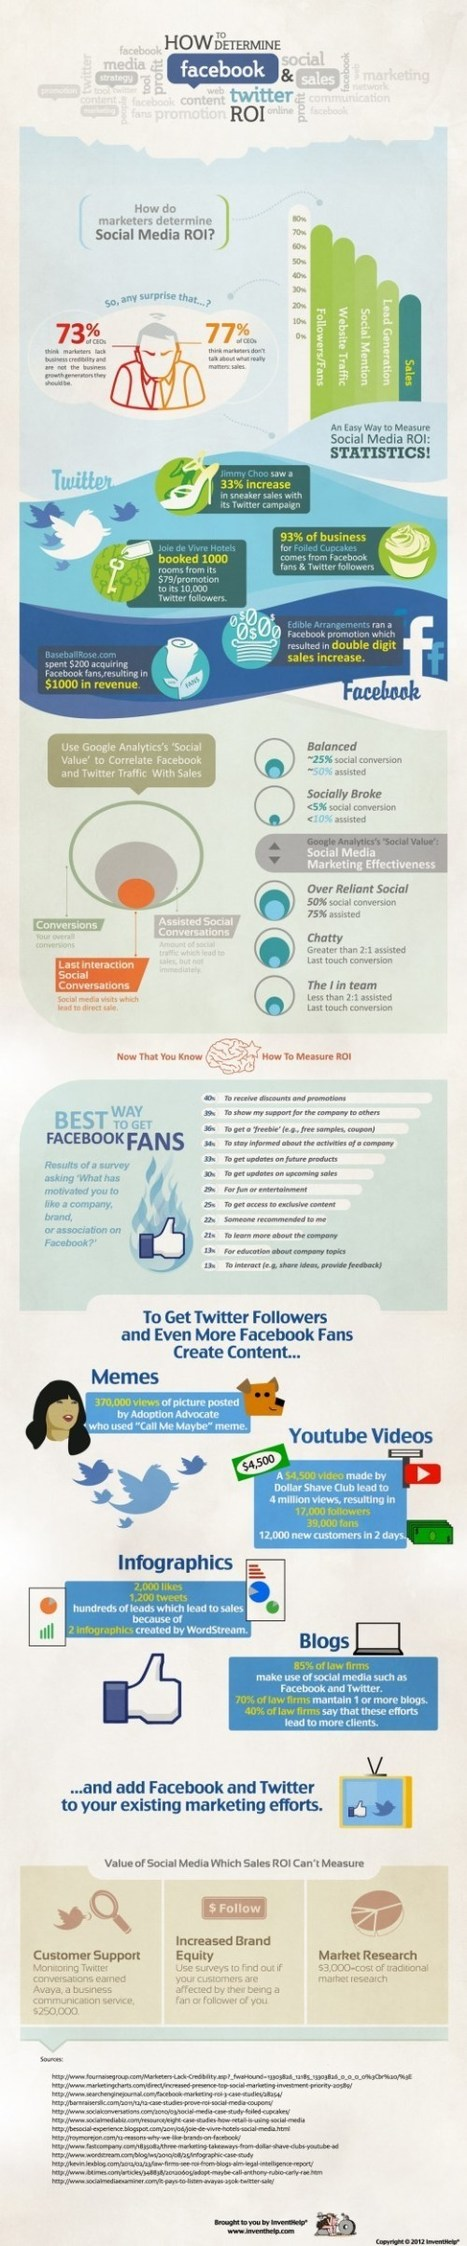 Some More Thoughts On Social Media and ROI (Infographic) | Social Media ROI: articles and stats | Scoop.it